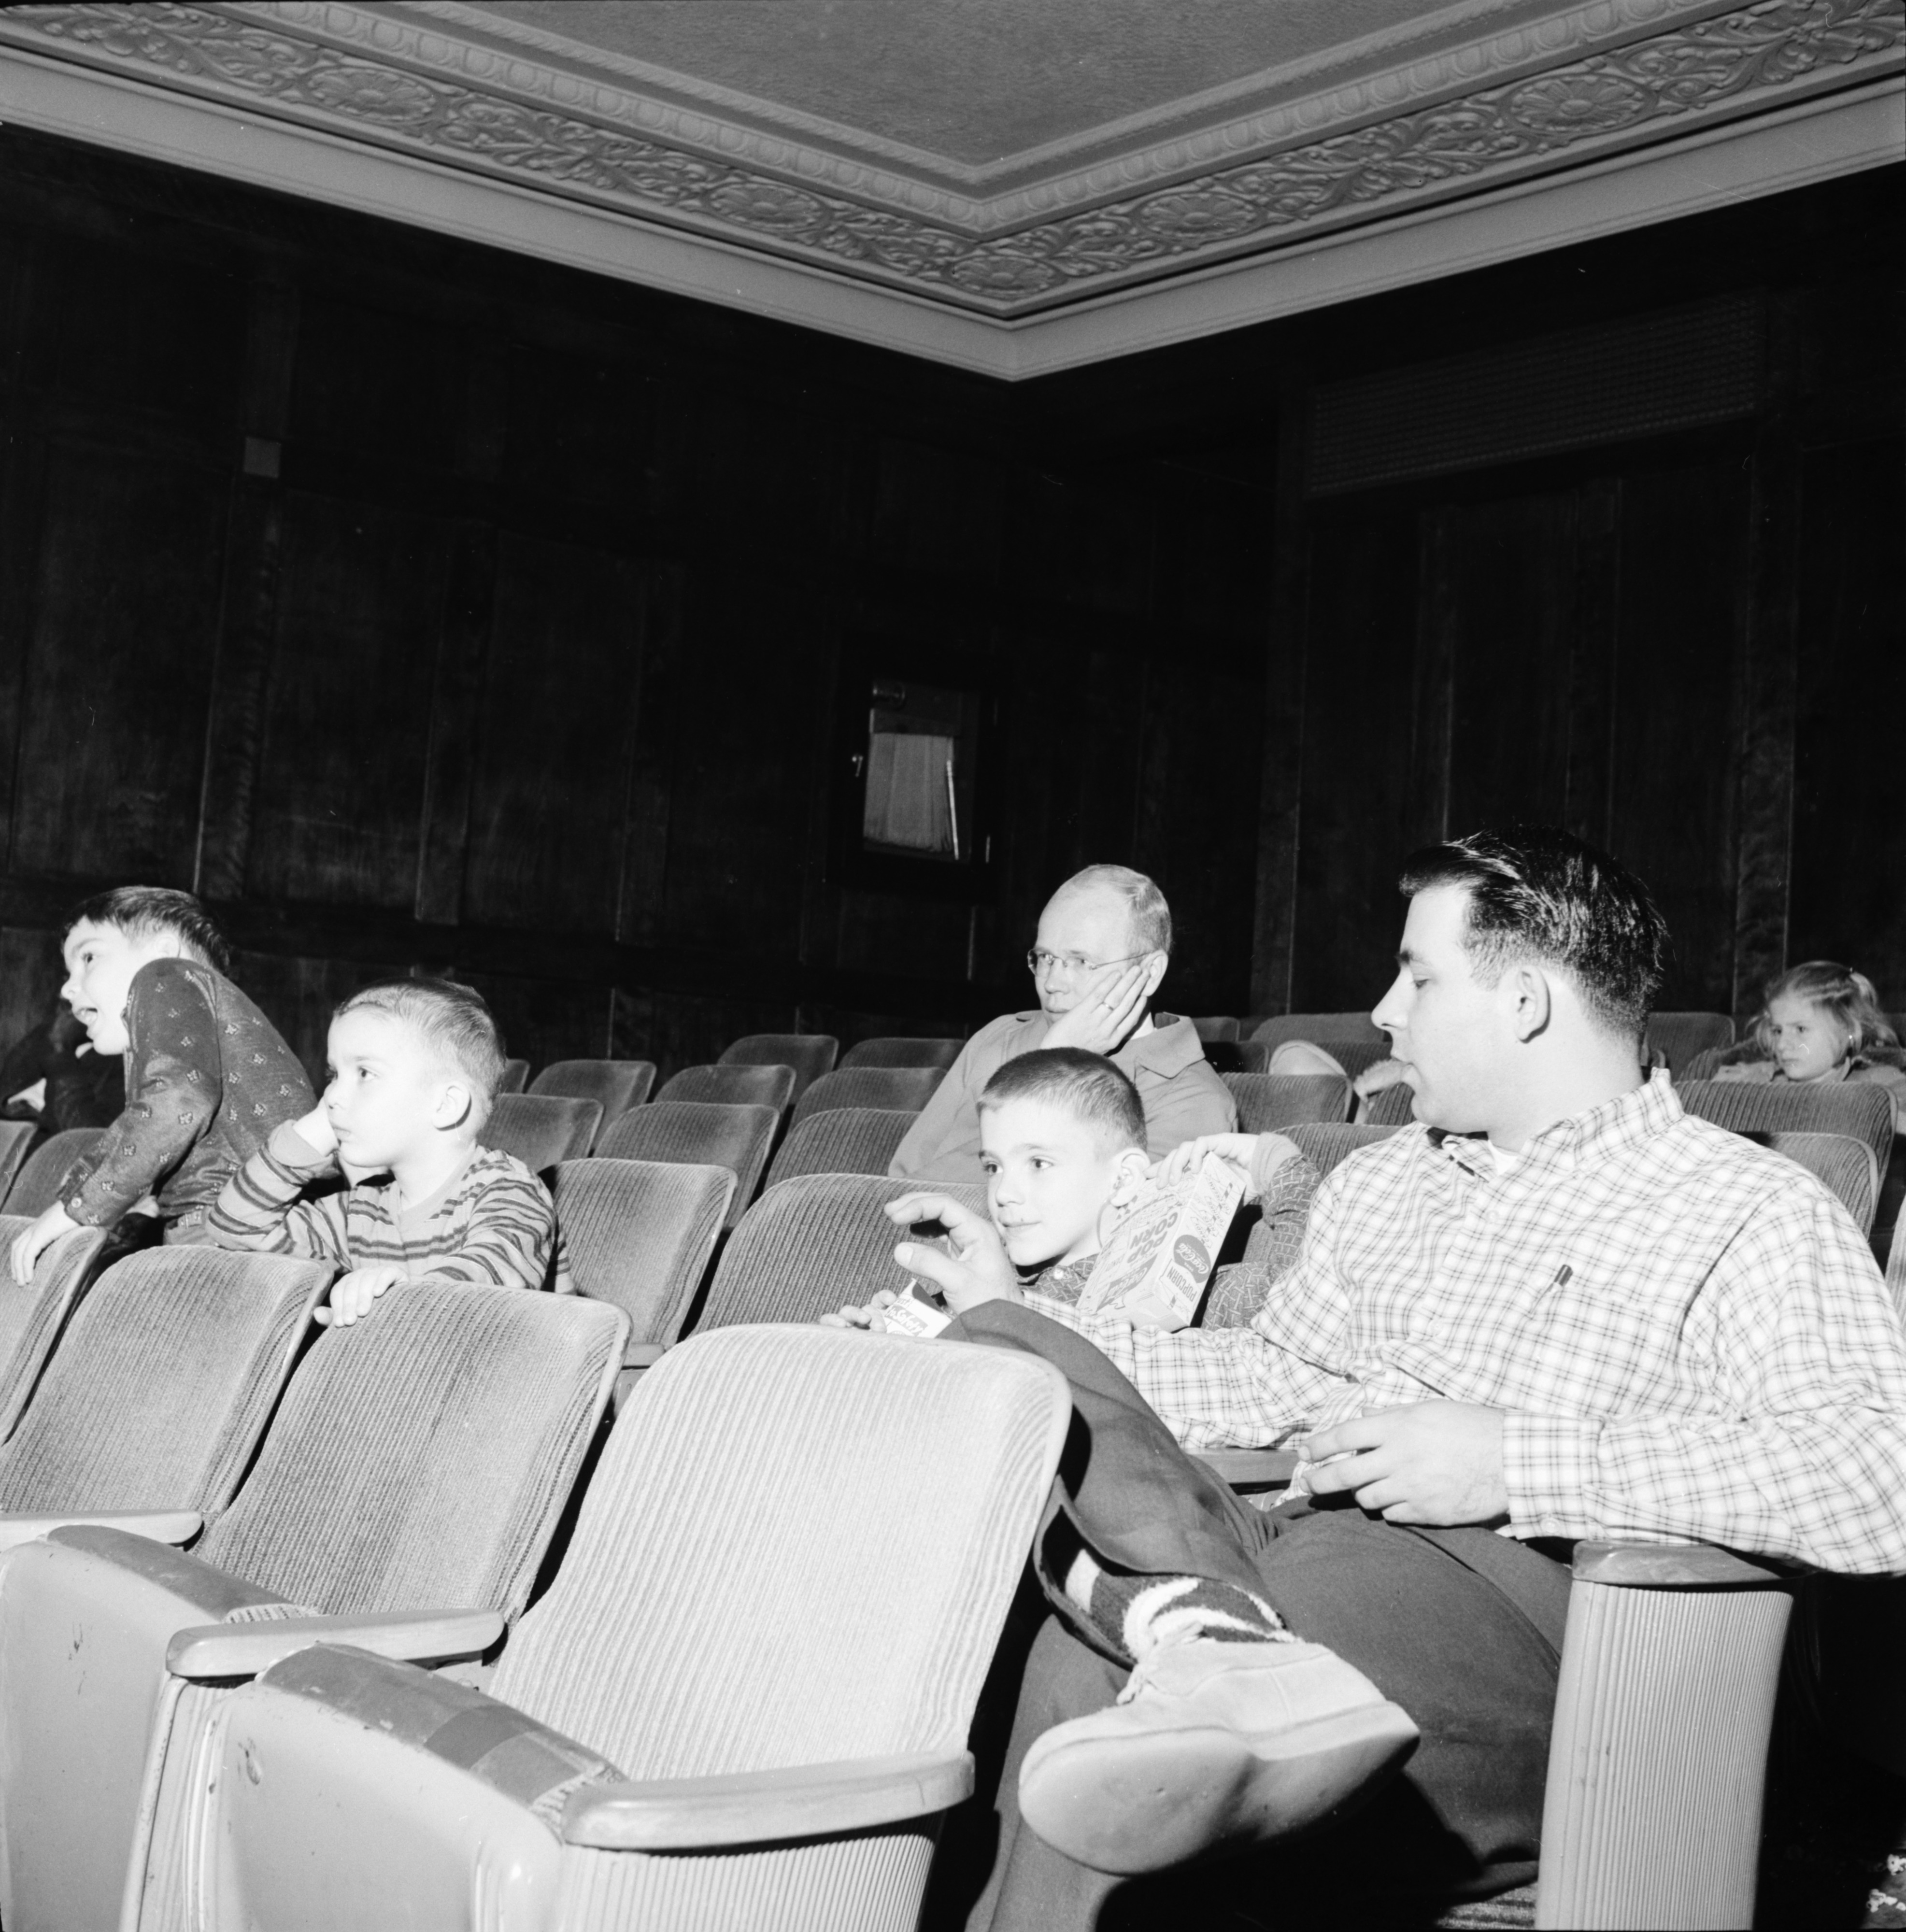 Ann Arbor News reporter Bill Treml watching cartoons at the Michigan Theater with kids, November 1960 image